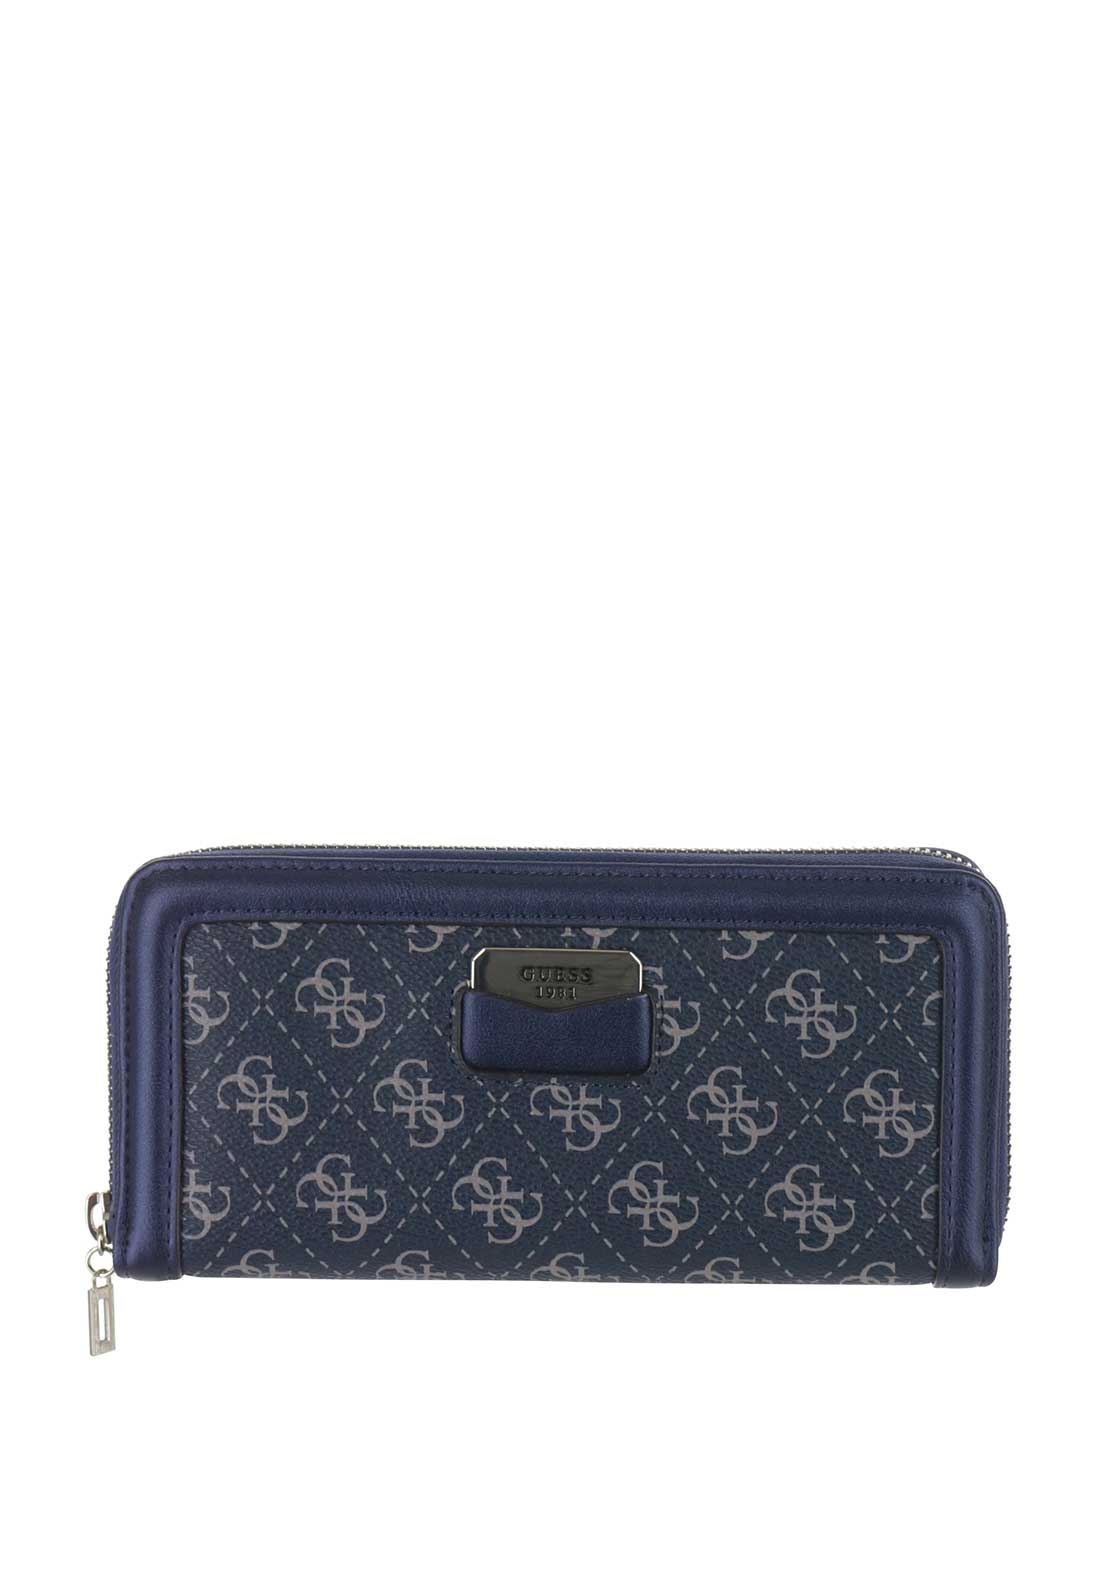 Guess Taree SLG Python Print Zip Around Purse, Sapphire Blue